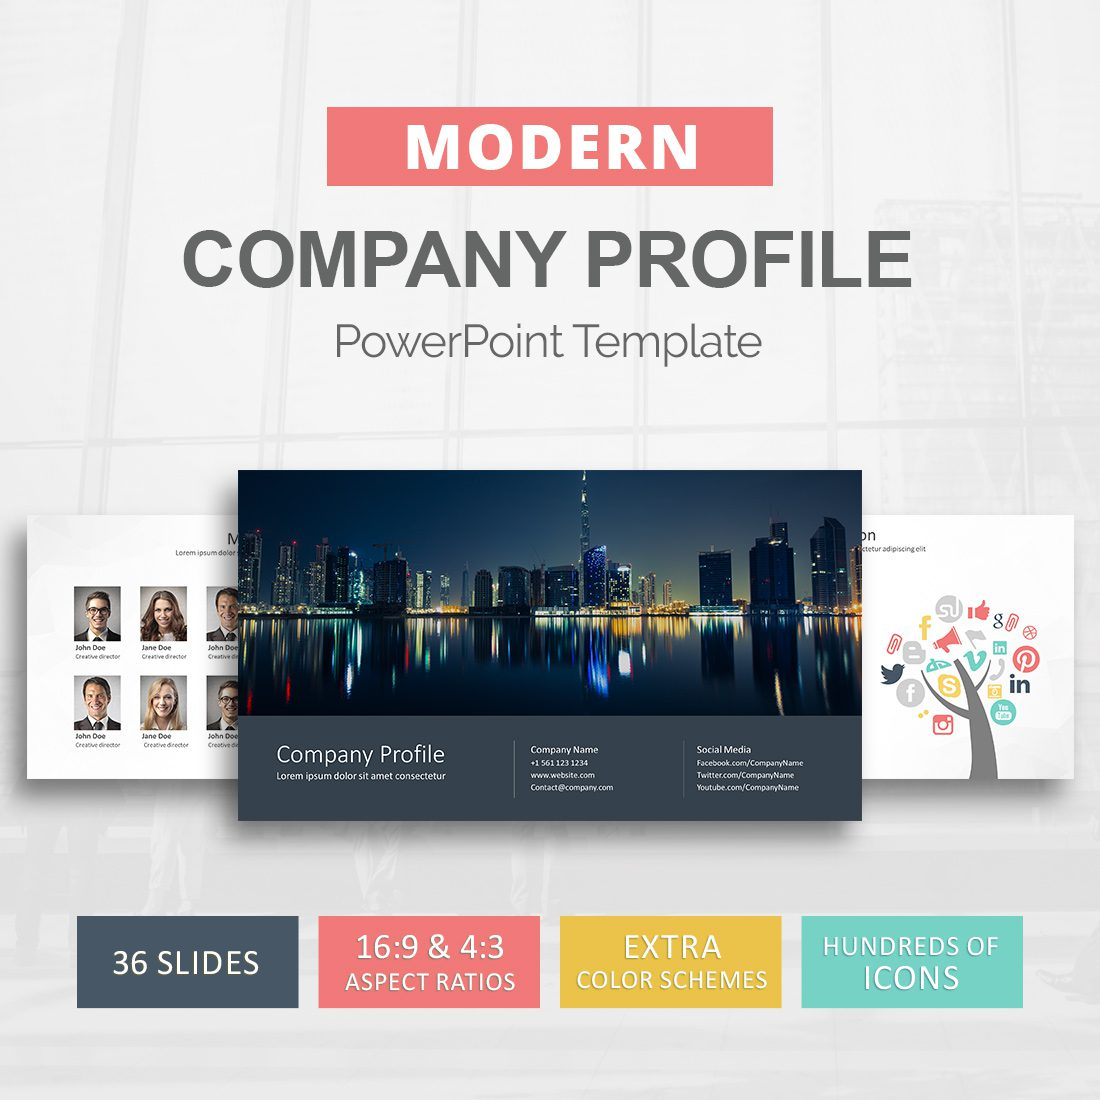 2a1e98d96 Company Profile PowerPoint Template - Presentation Templates - Slideson